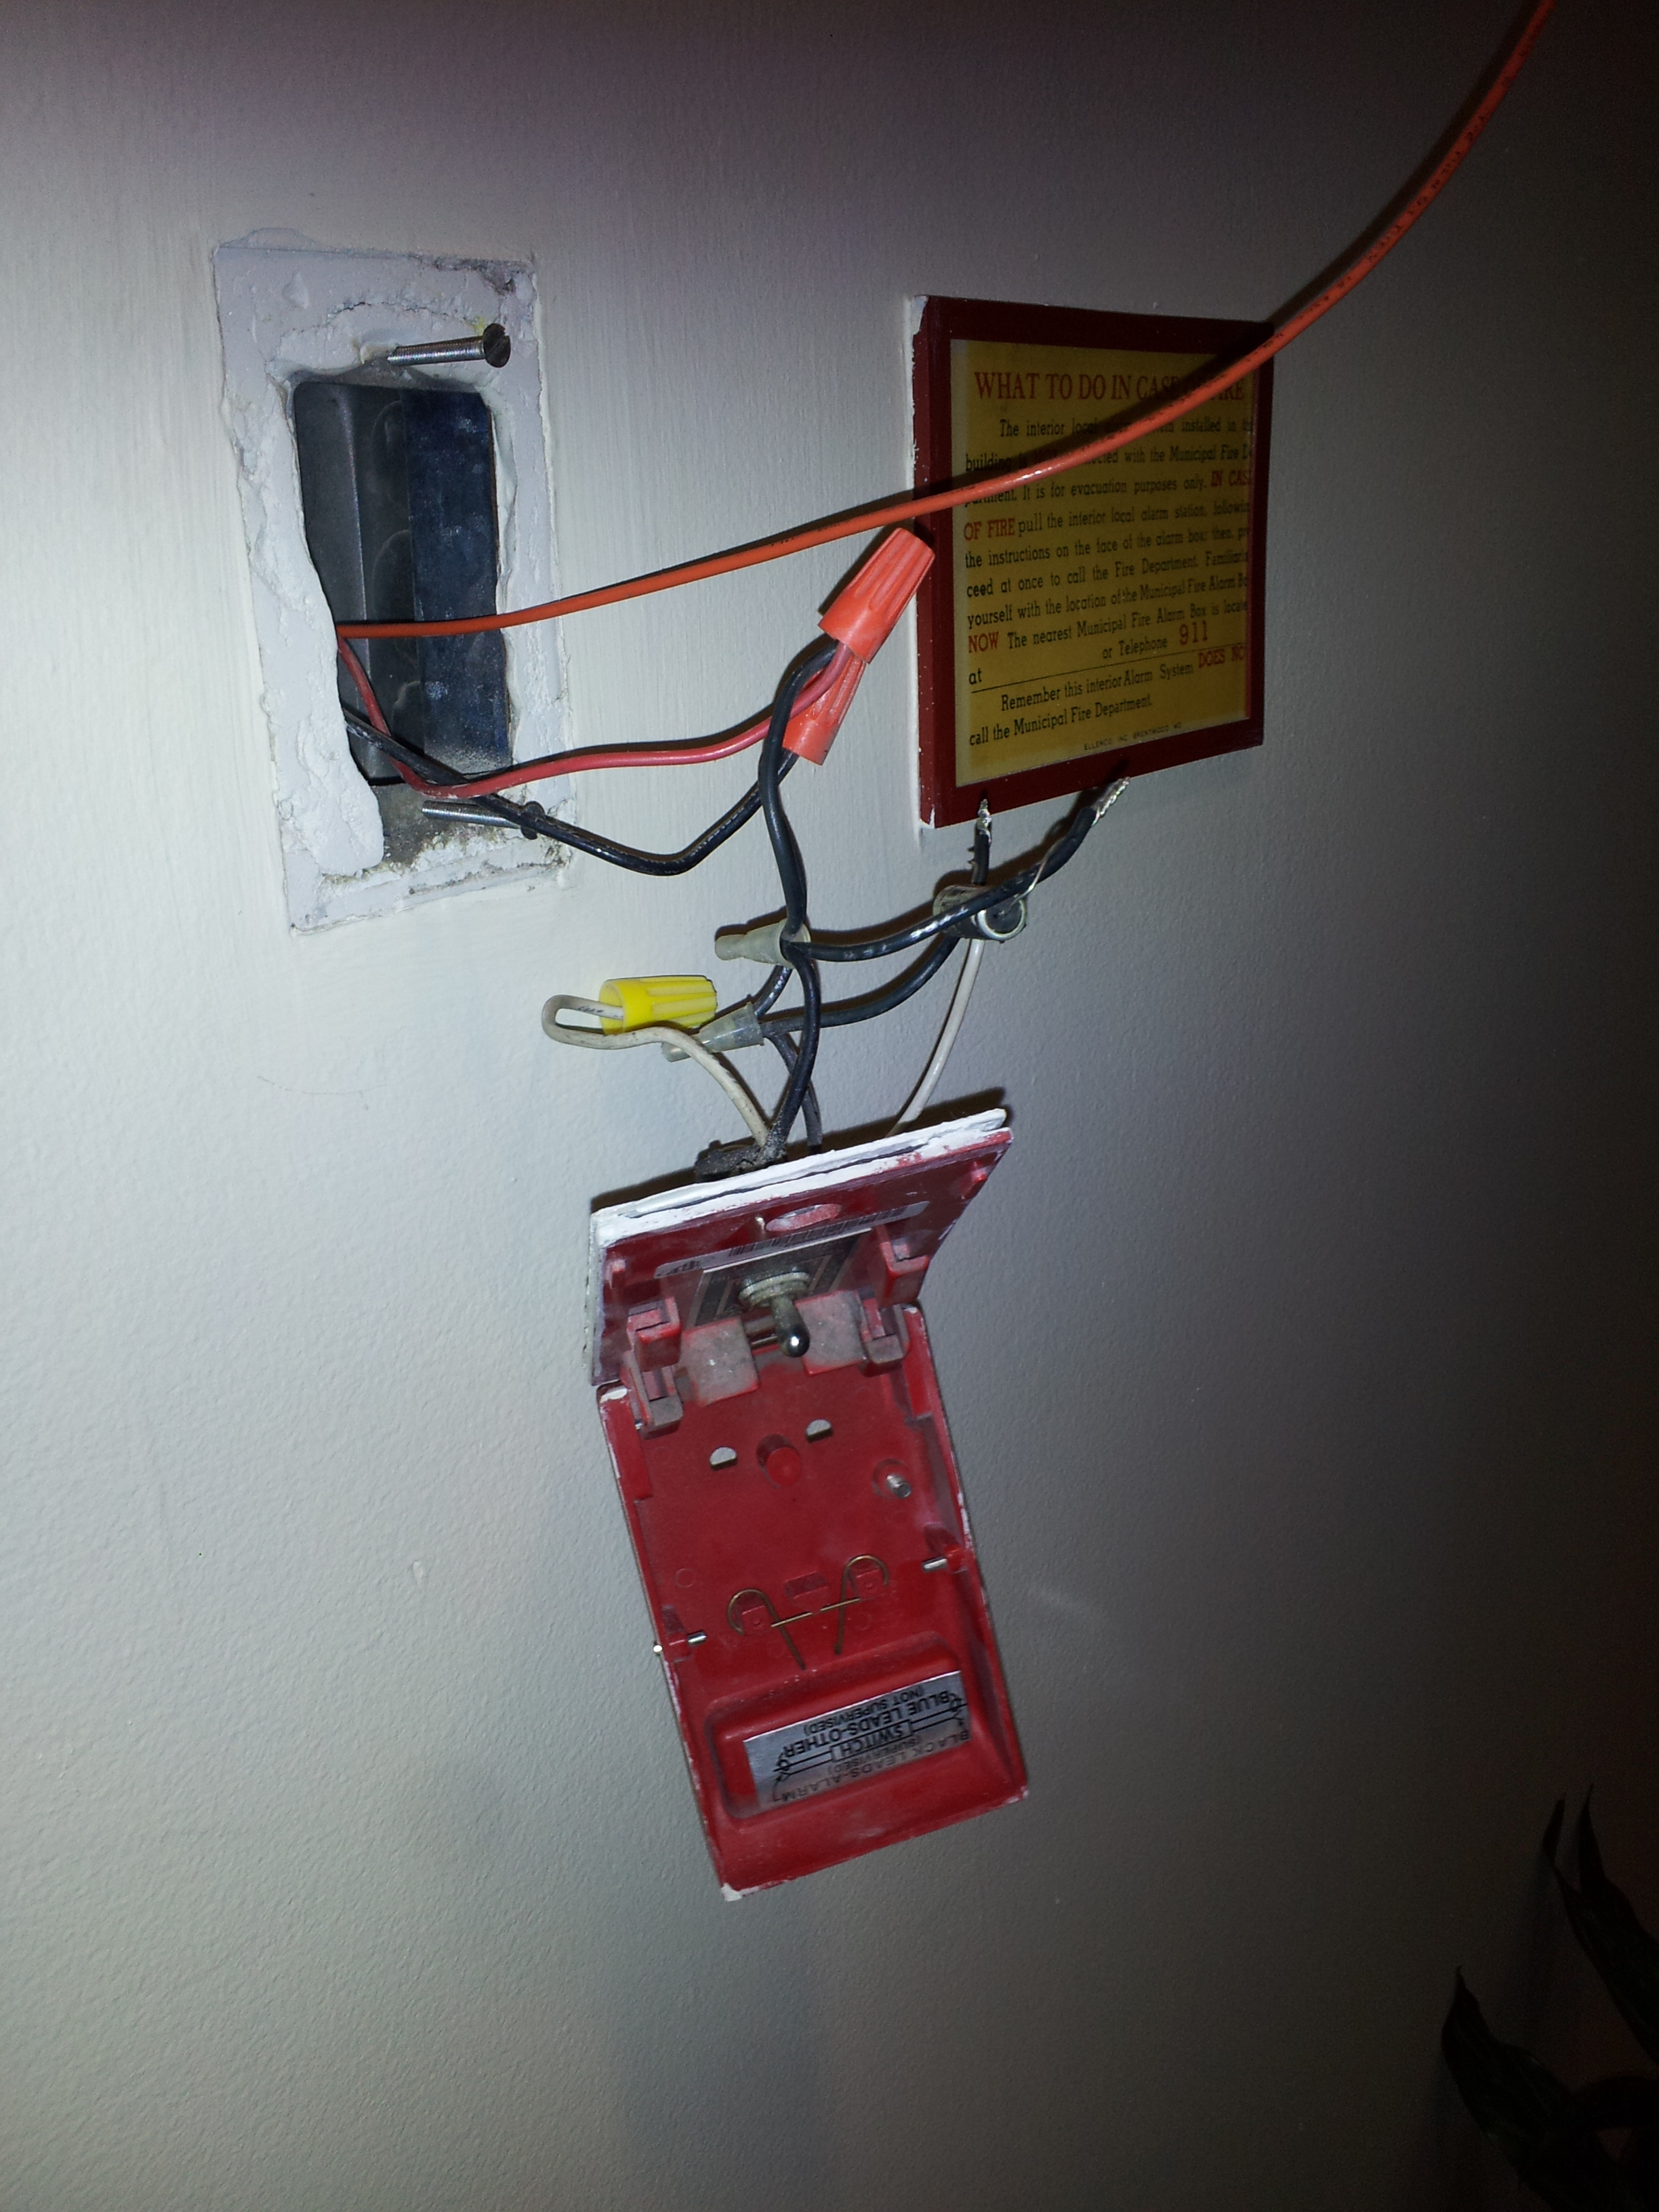 office fire alarms 03 the schumin web new fire alarms at work again simplex pull station wiring diagram at edmiracle.co